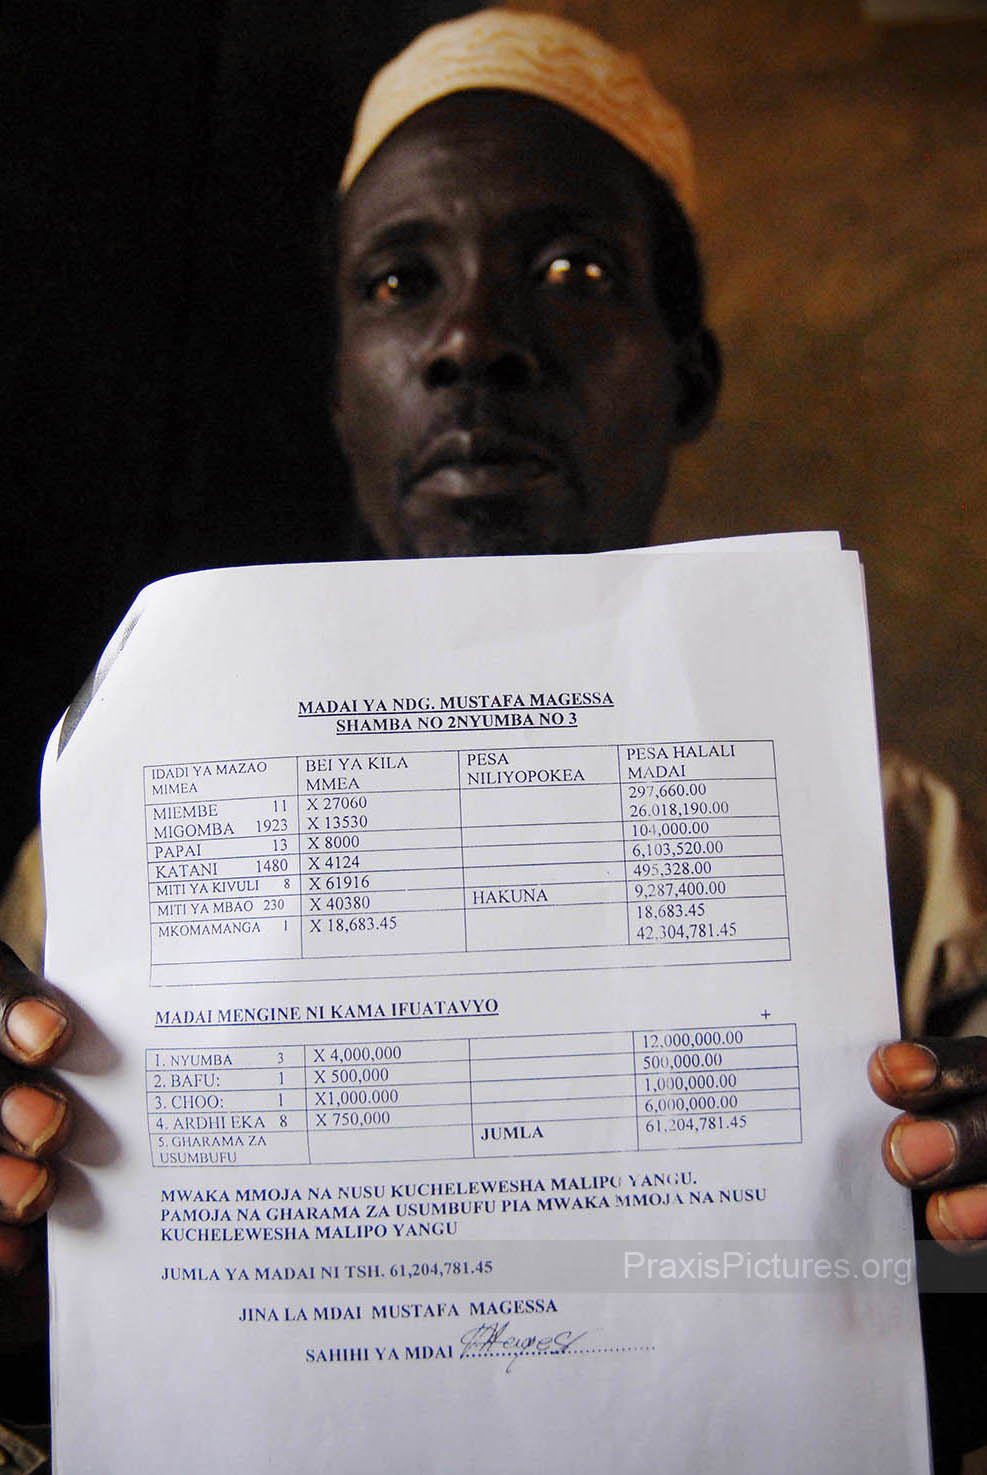 "MUSTAFA - The government's Prevention of Corruption Bureau is investigating a corruption scandal involving the compensation for some 900 people who were displaced to make way for AngloGold Ashanti's Geita Gold Mine in Geita.  Mustafa is one of the complainants; here he is showing documents that state that he was promised over 60million shillings (55,000CAD) in compensation which he has never received.  AngloGold admits that 875 people have not received the compensation promised to them, but they claim to have given government officials the money needed to make the payments in 1999 and blame these officials  ""in their lust for money""  for the disappearance of the funds."